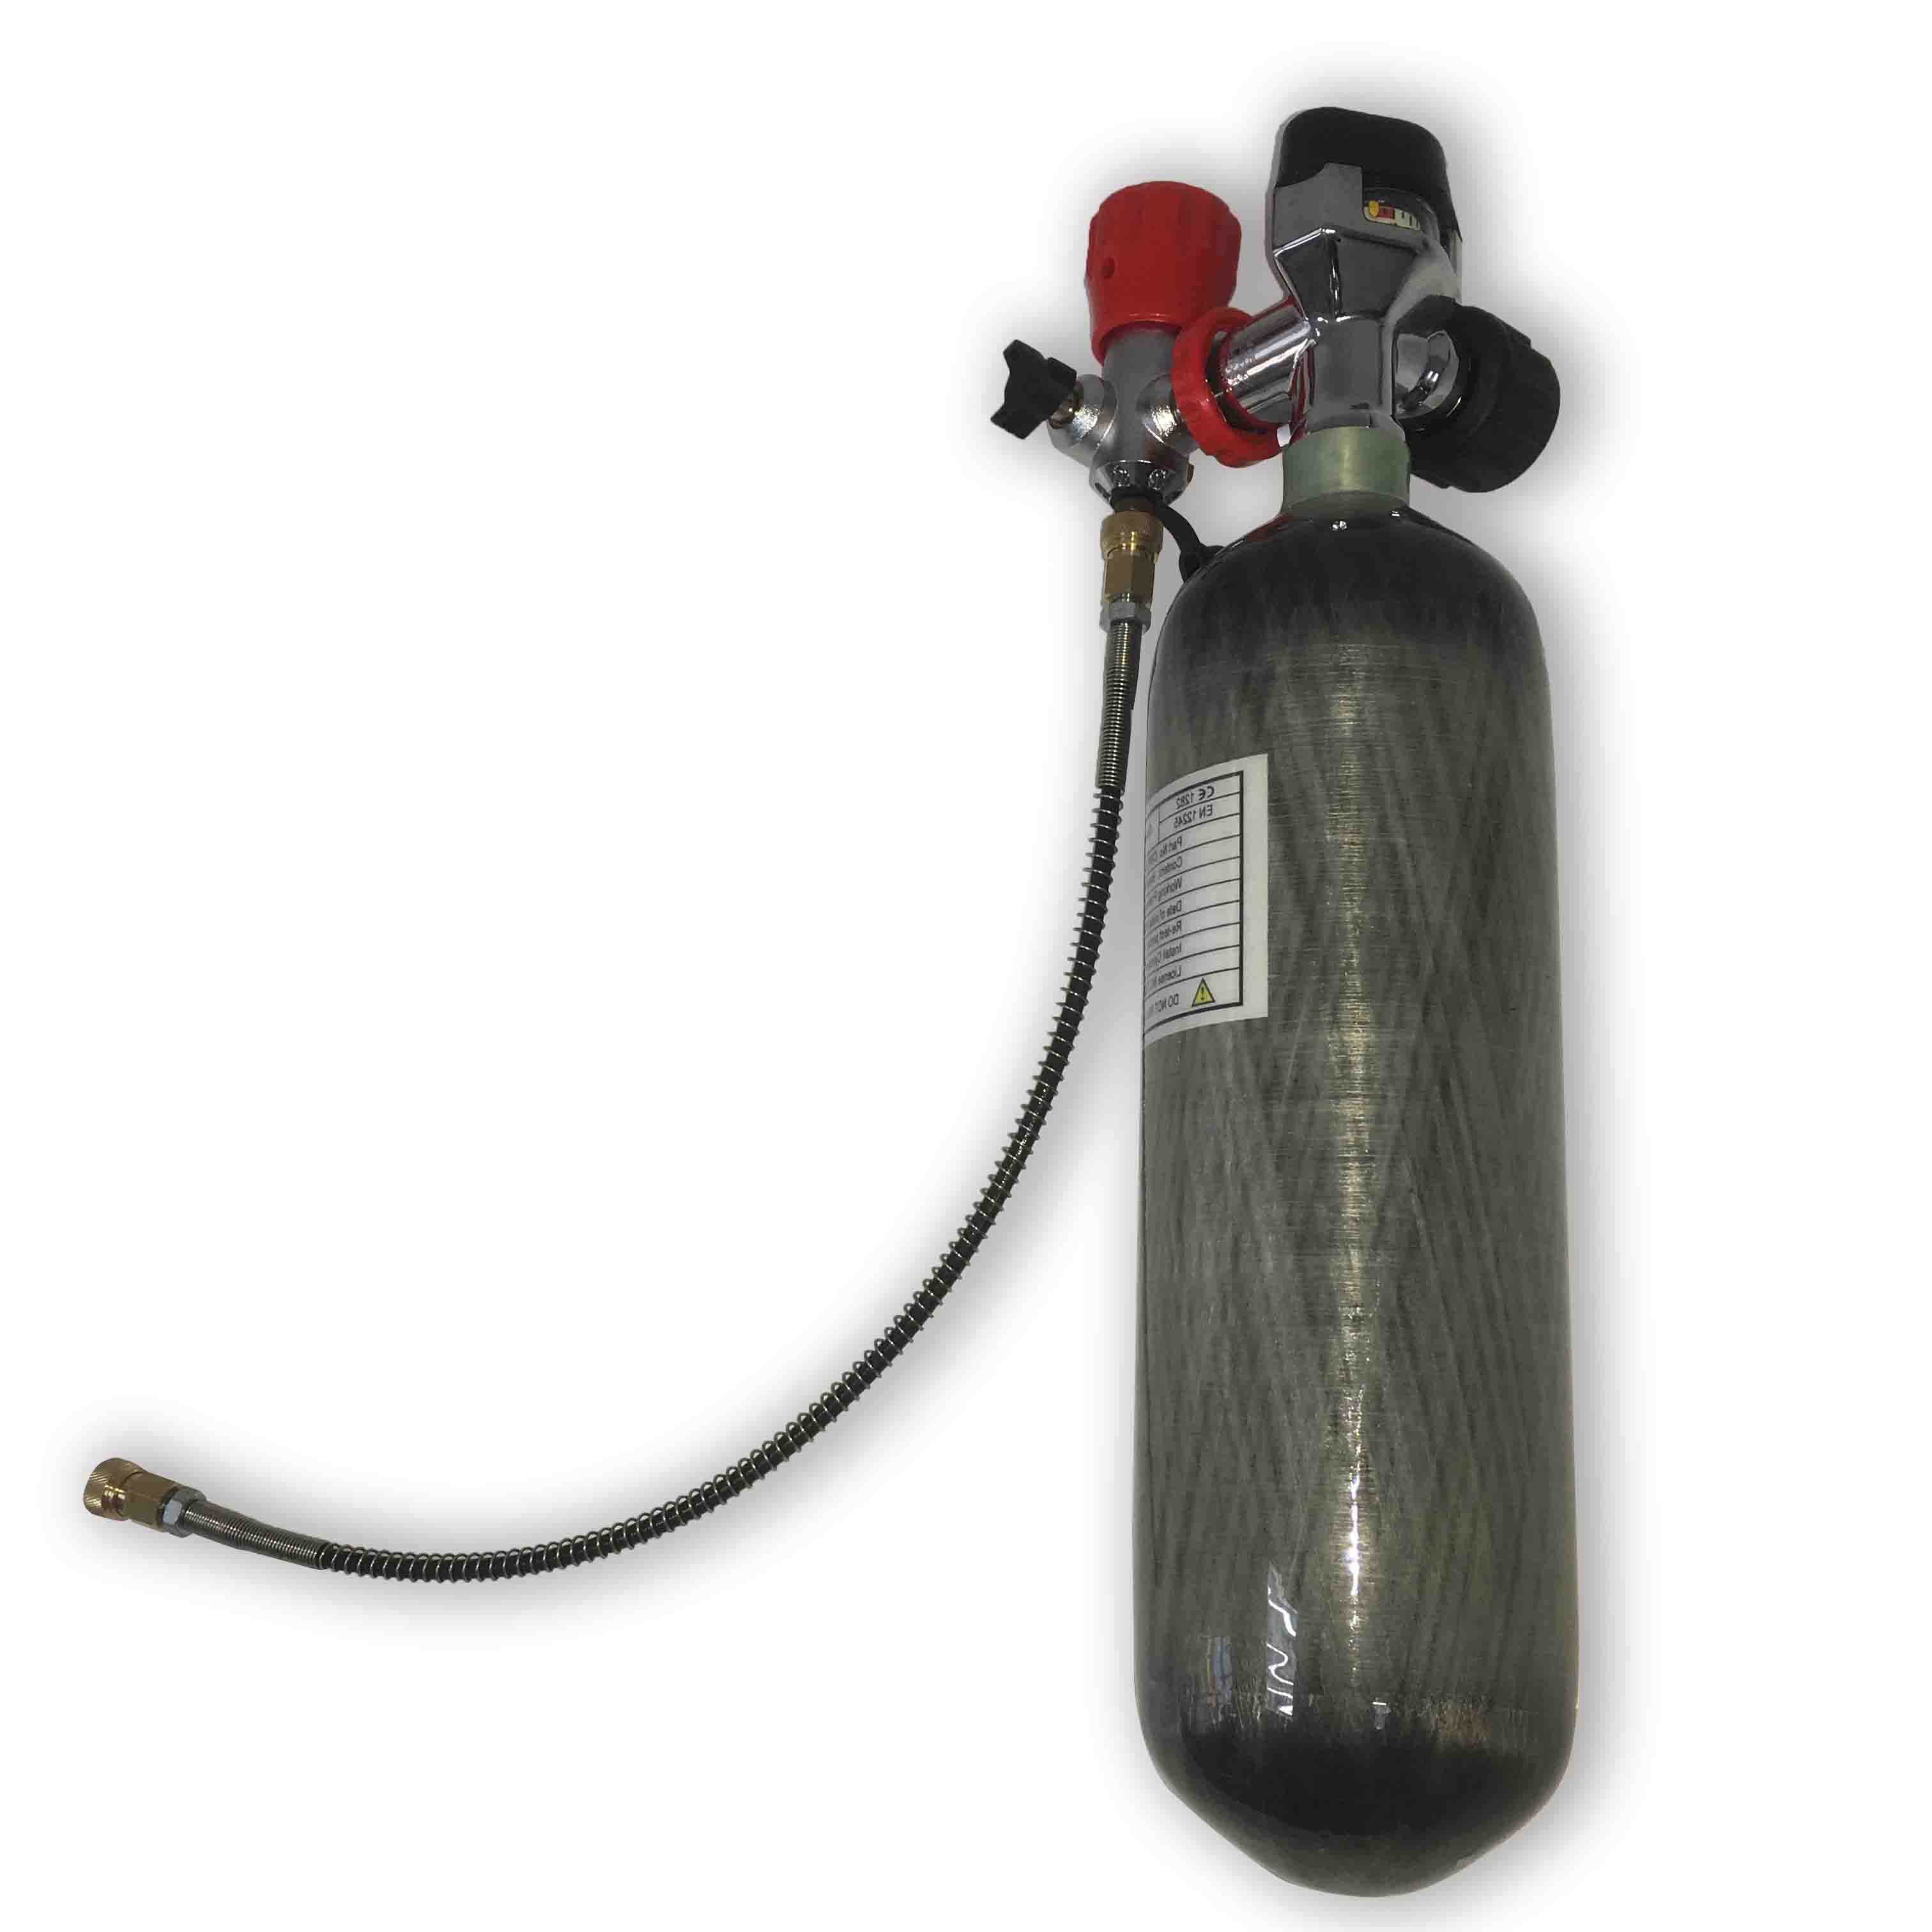 AC121721 2.17L 4500psi High Pressure Cylinders With PCP Valve For Compressed Air Weapons/Air Rifle/Underwater Gun Spearfishing